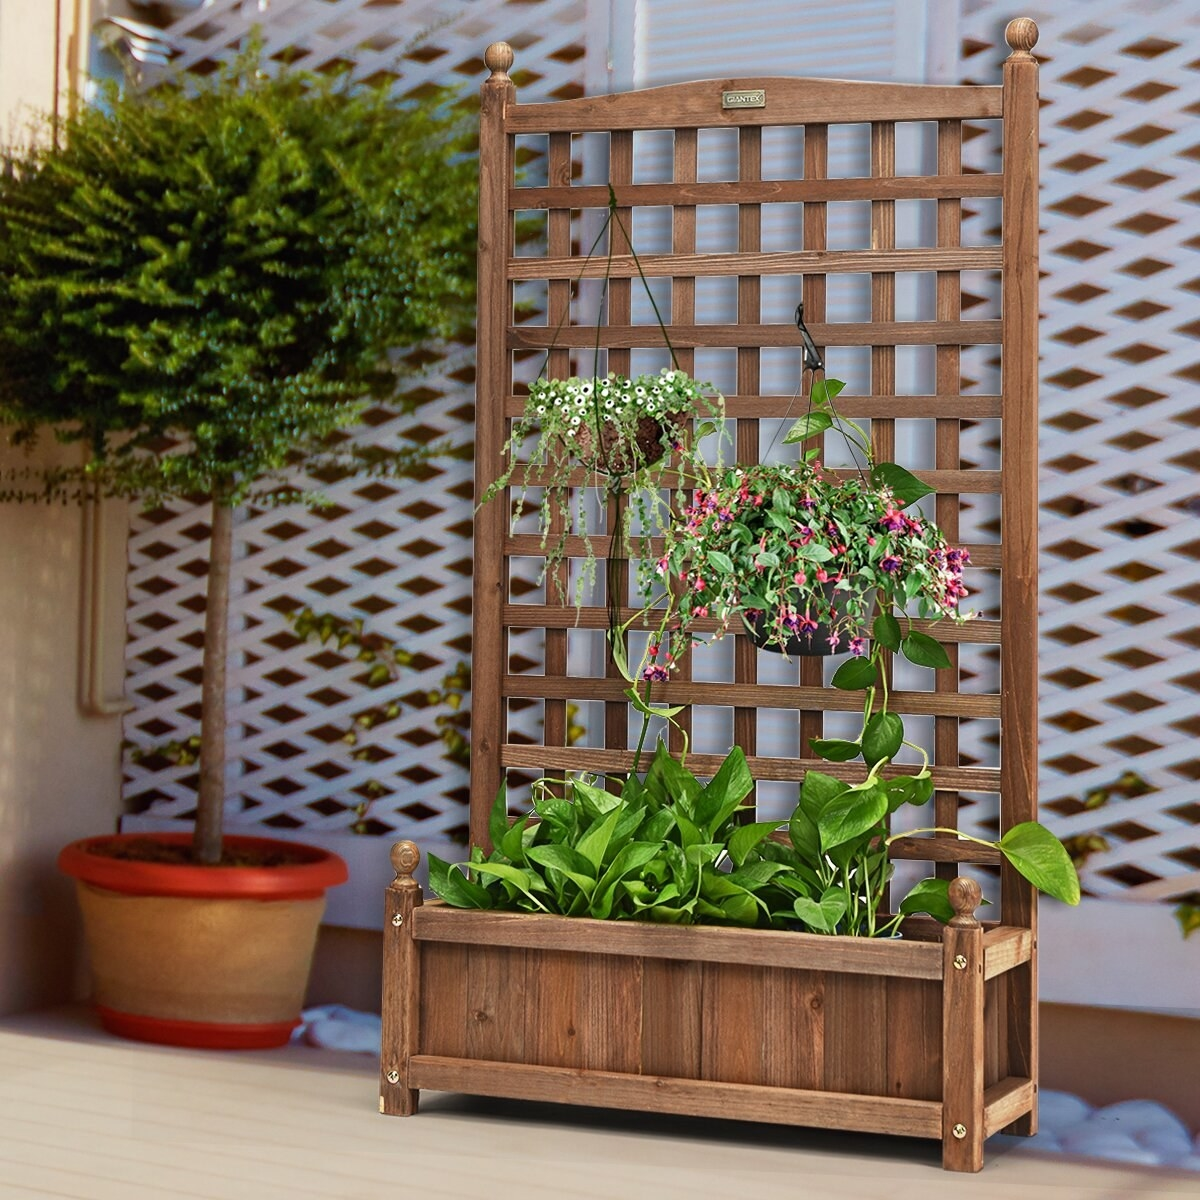 the wooden trellis with two hanging plants and some greenery in the base